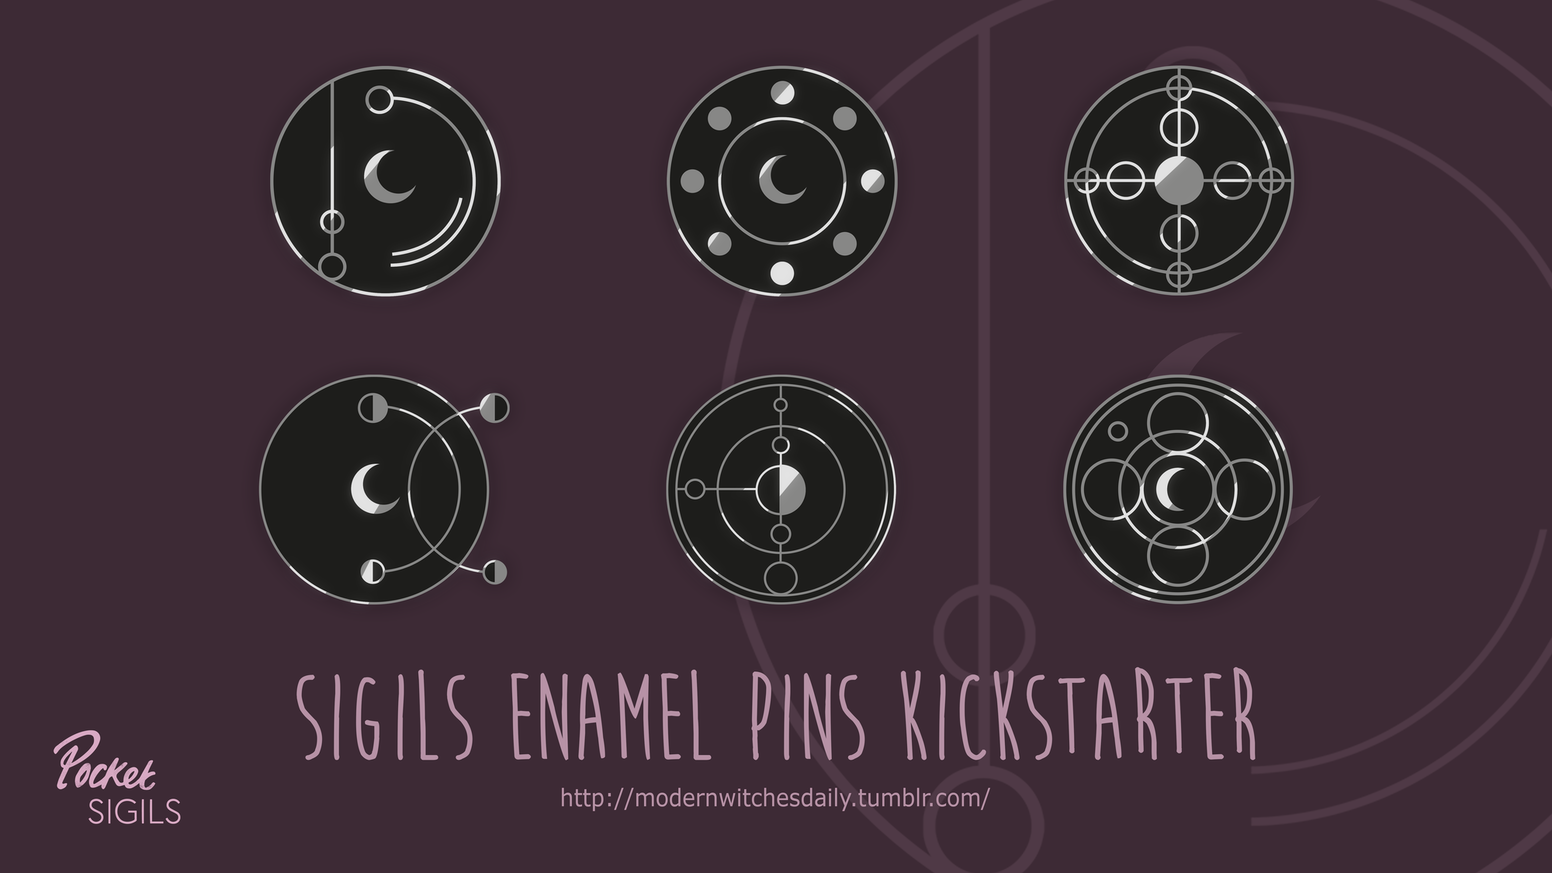 Enamel pins of my Sigils to wear on your daily life to protect you, bring you peace, confidence and more! ☾